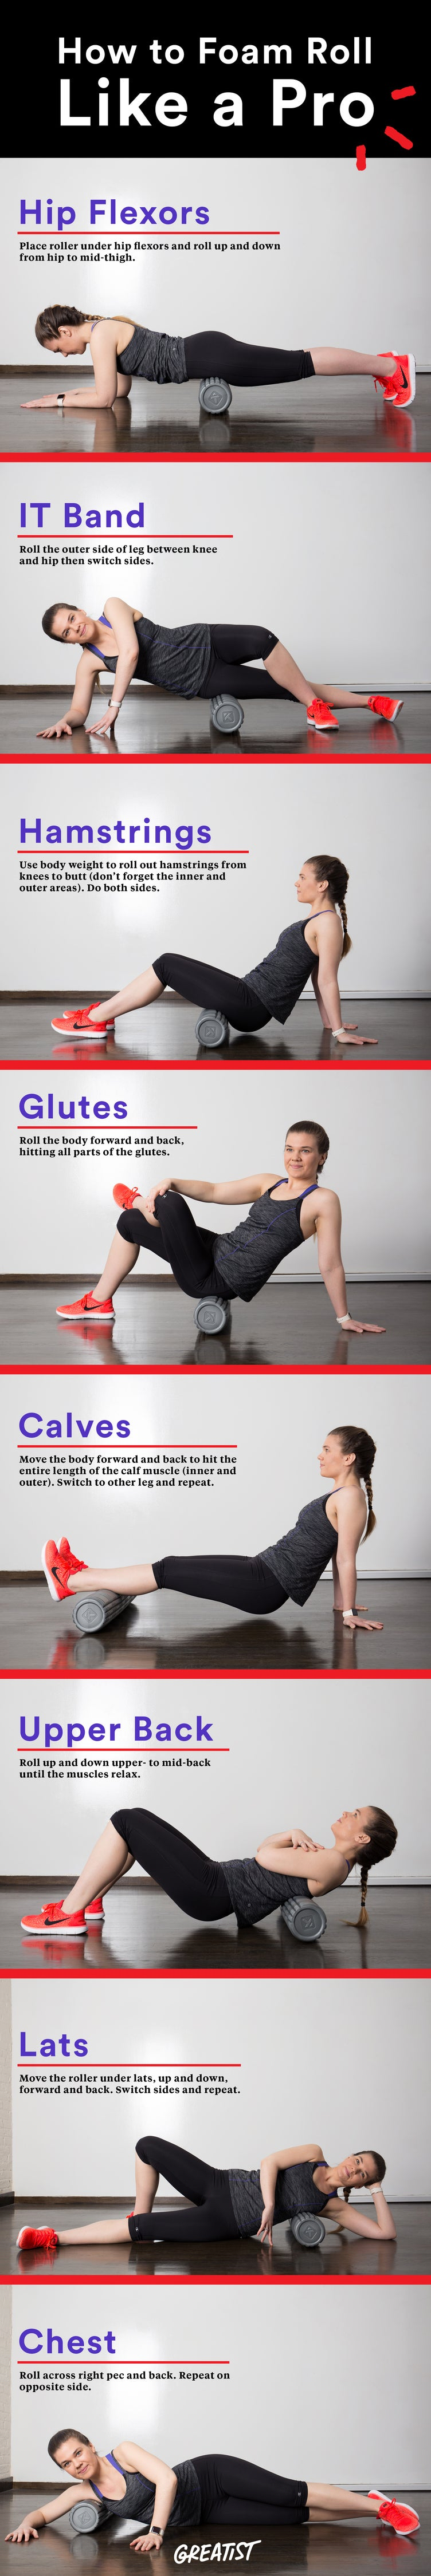 Eight Foam Rolling Techniques to Loosen Up Your Muscles